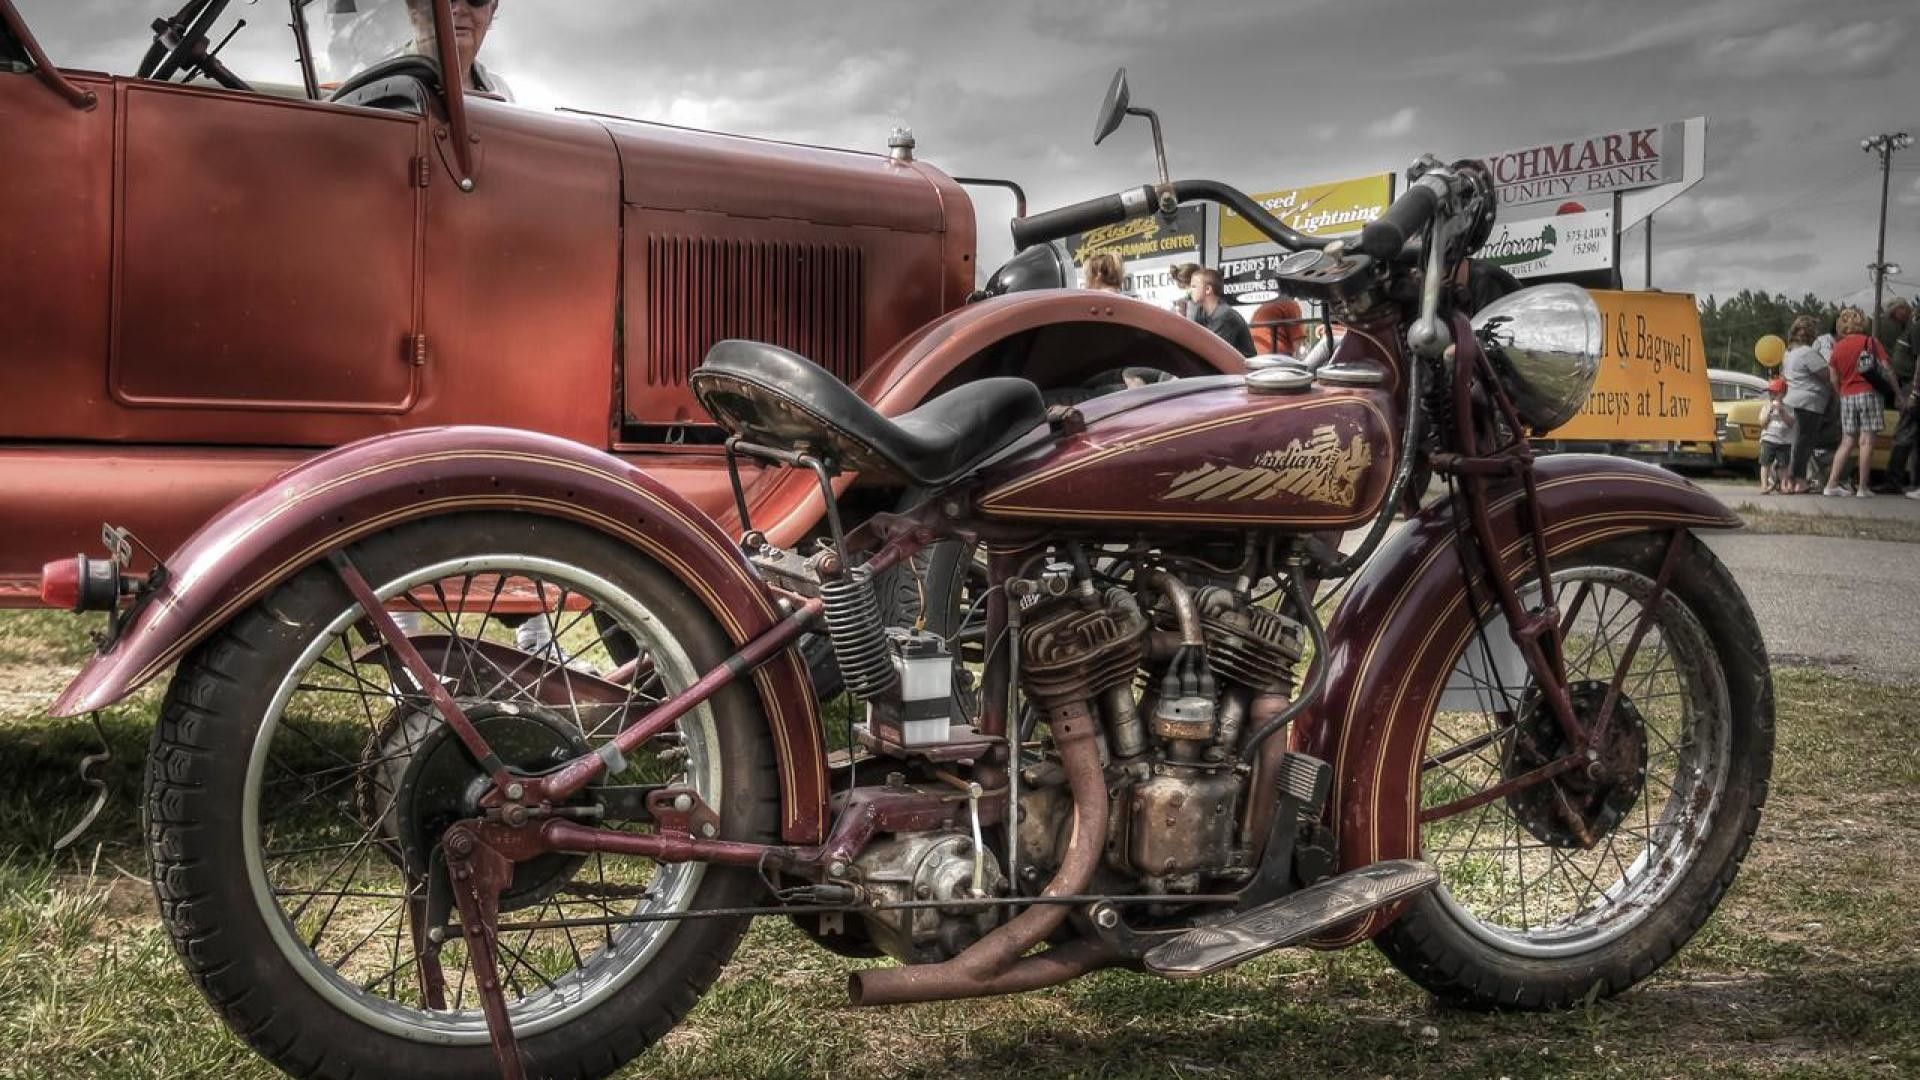 1920x1080 - Indian Motorcycle Desktop 10